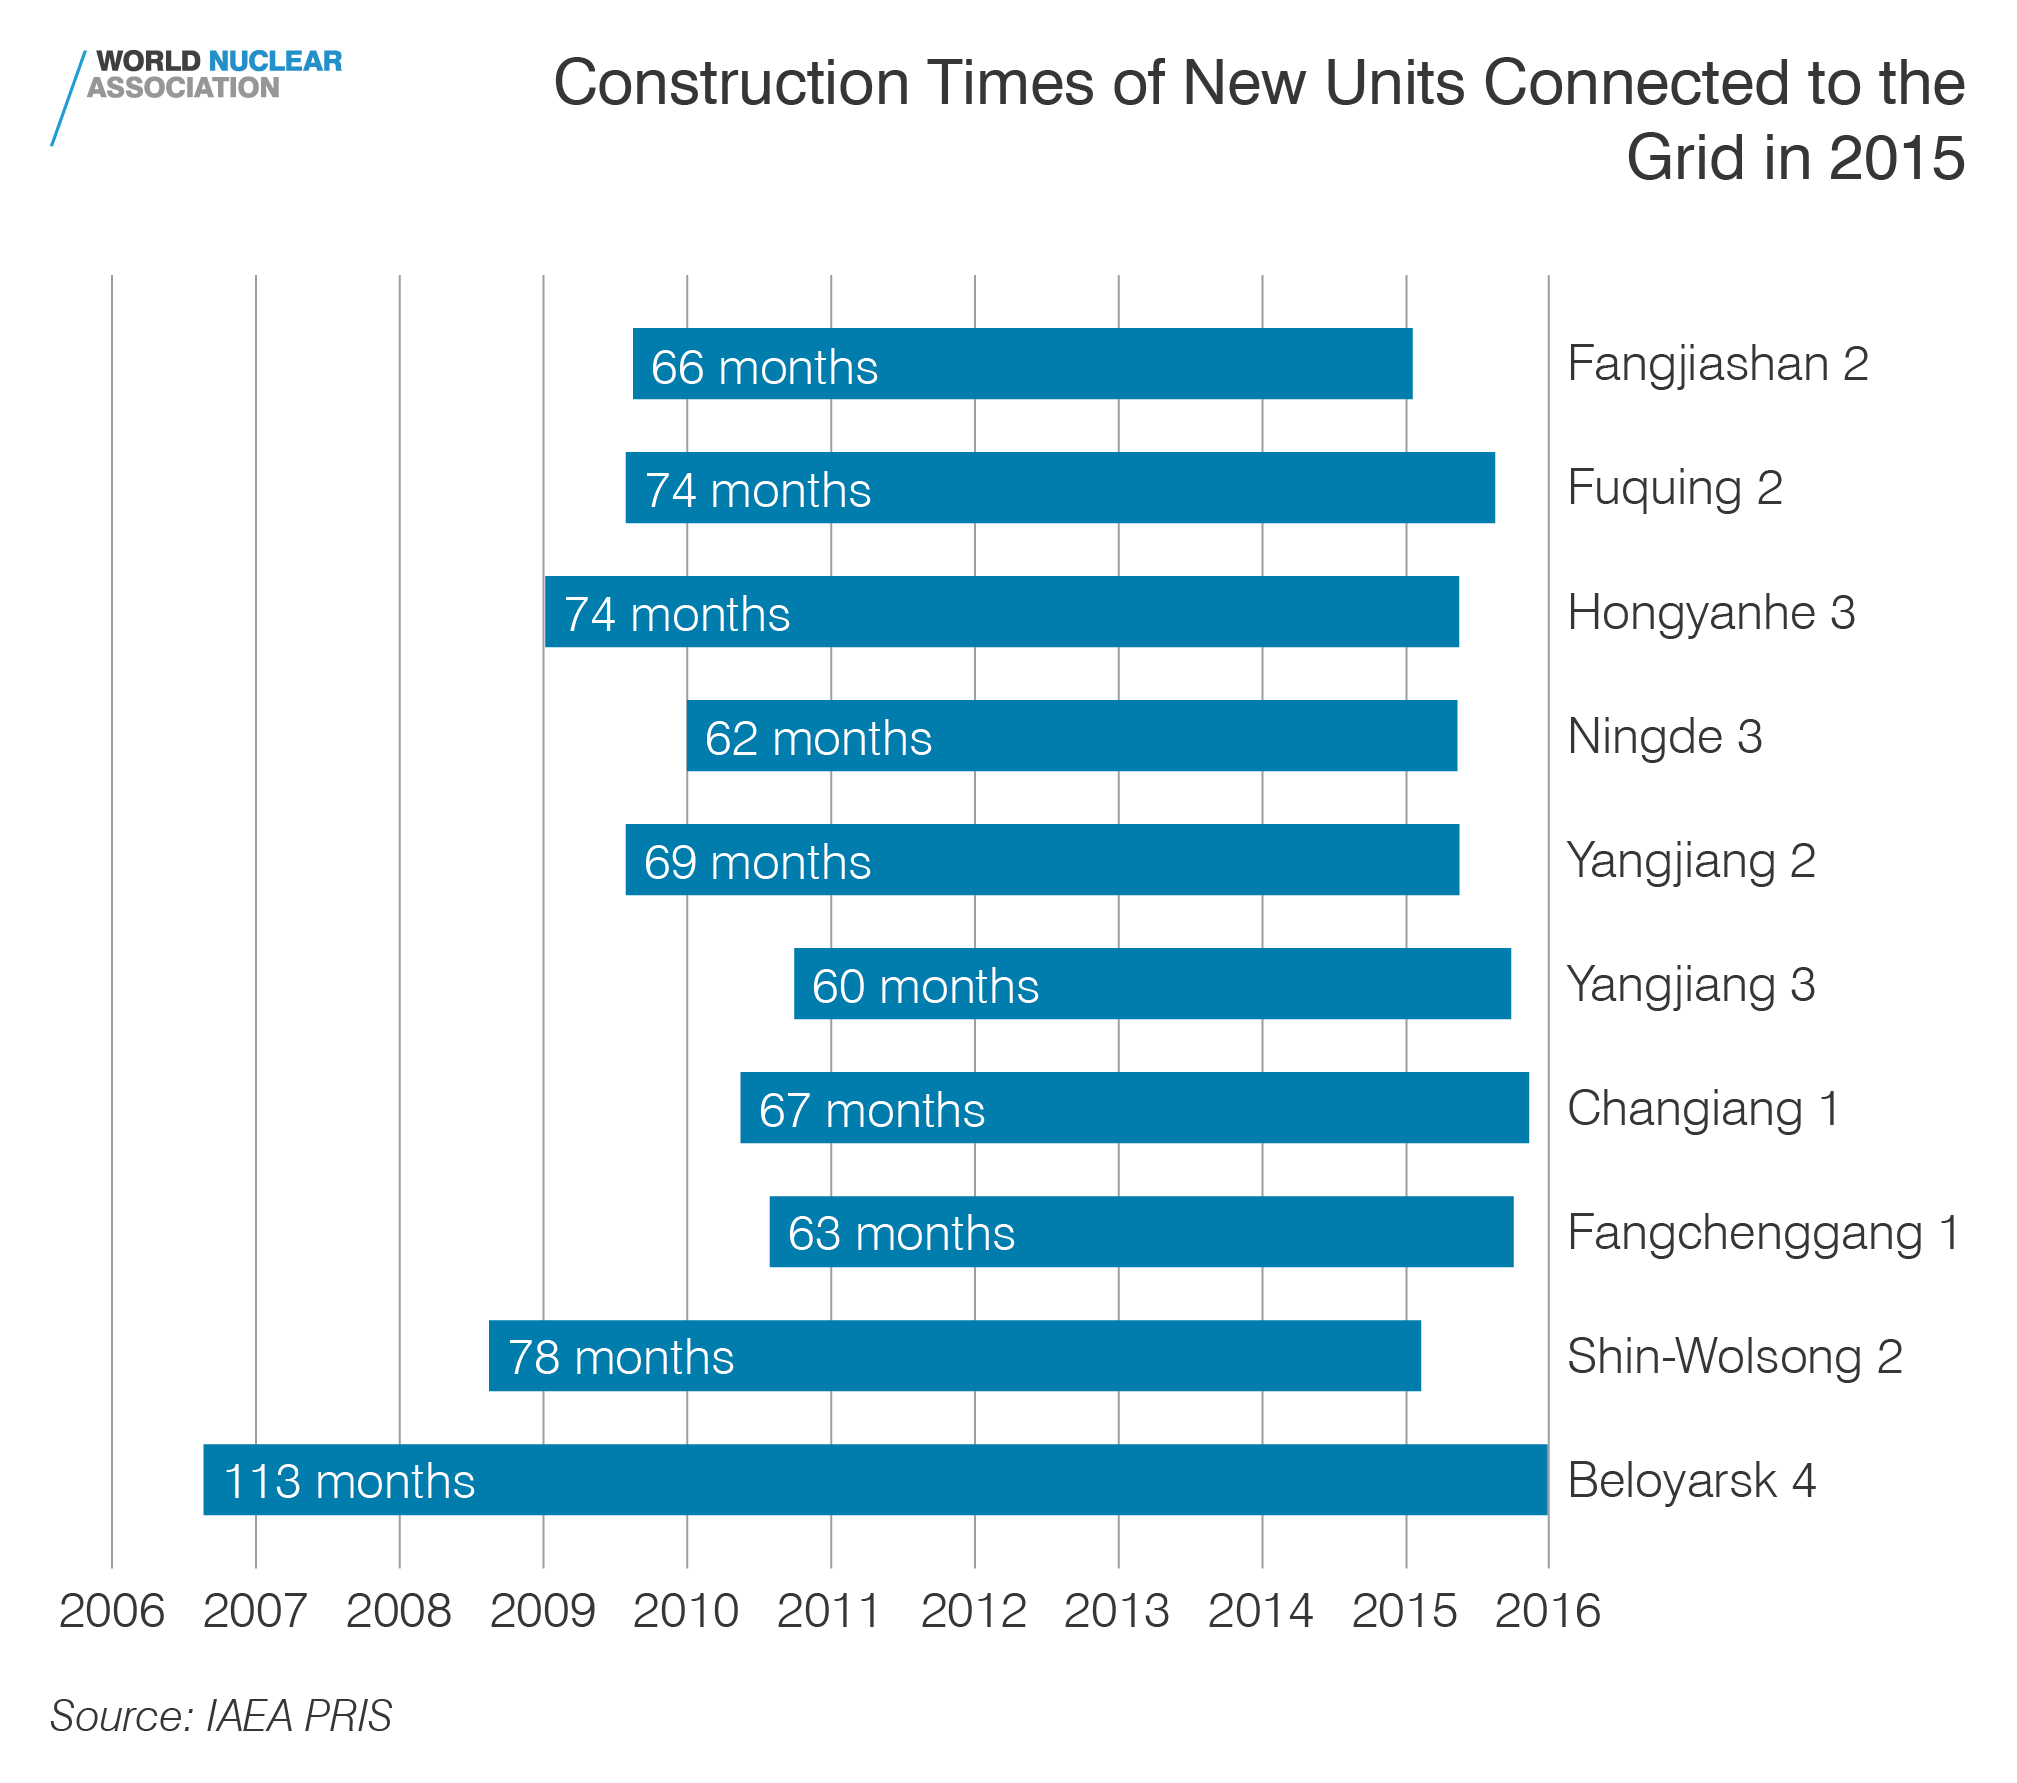 Construction times of new units connected to the grid in 2015